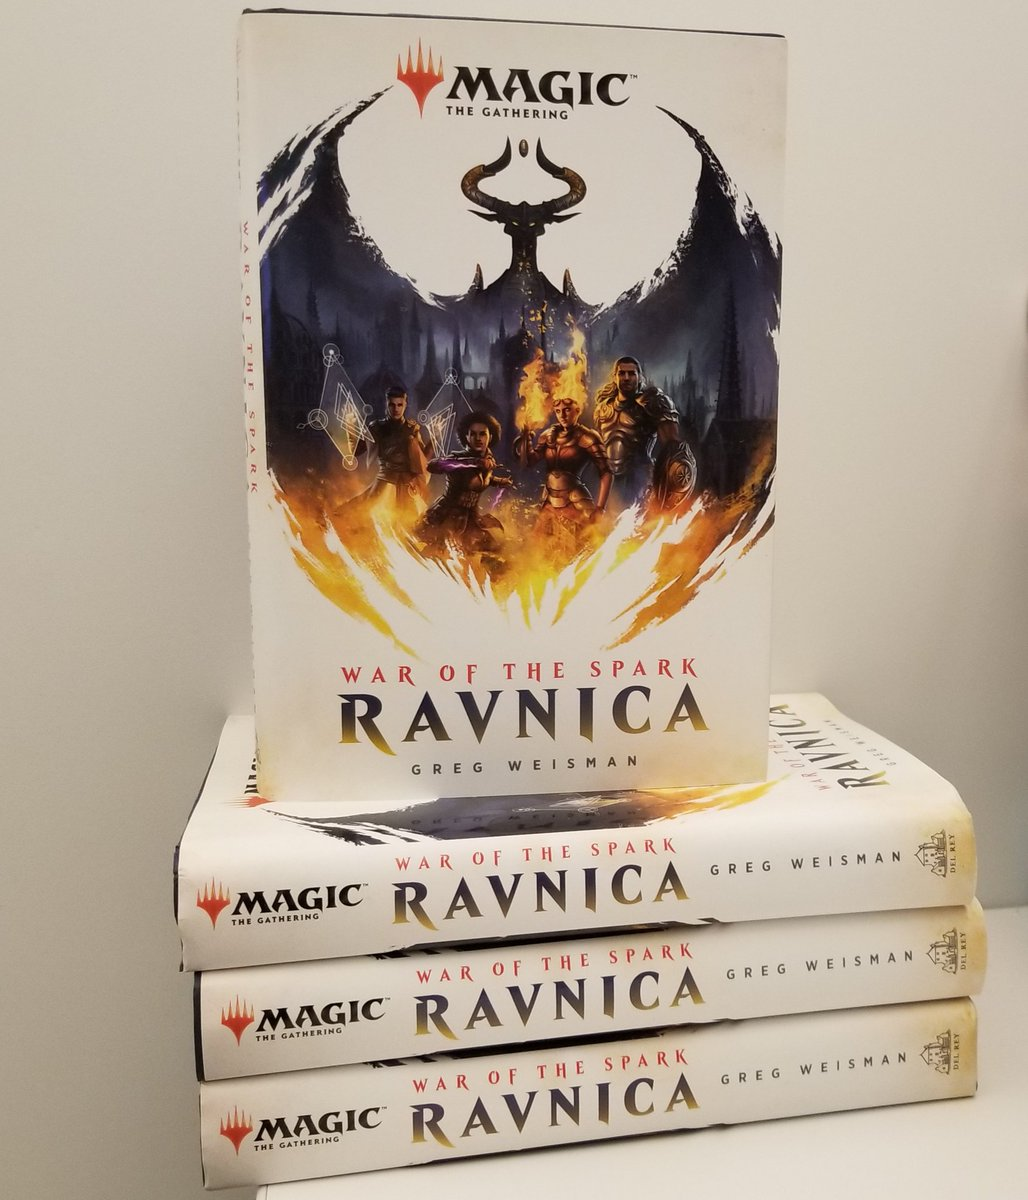 War of the Spark: Ravnica is out tomorrow. In celebration of #MTGWAR and our first Magic novel, I&#39;ll answer a few questions about the book. Leave &#39;em below and I&#39;ll get to them today. Also I&#39;ll send 1 person a free copy signed by author Greg Weisman. #mtg <br>http://pic.twitter.com/s4yn0vTdLd